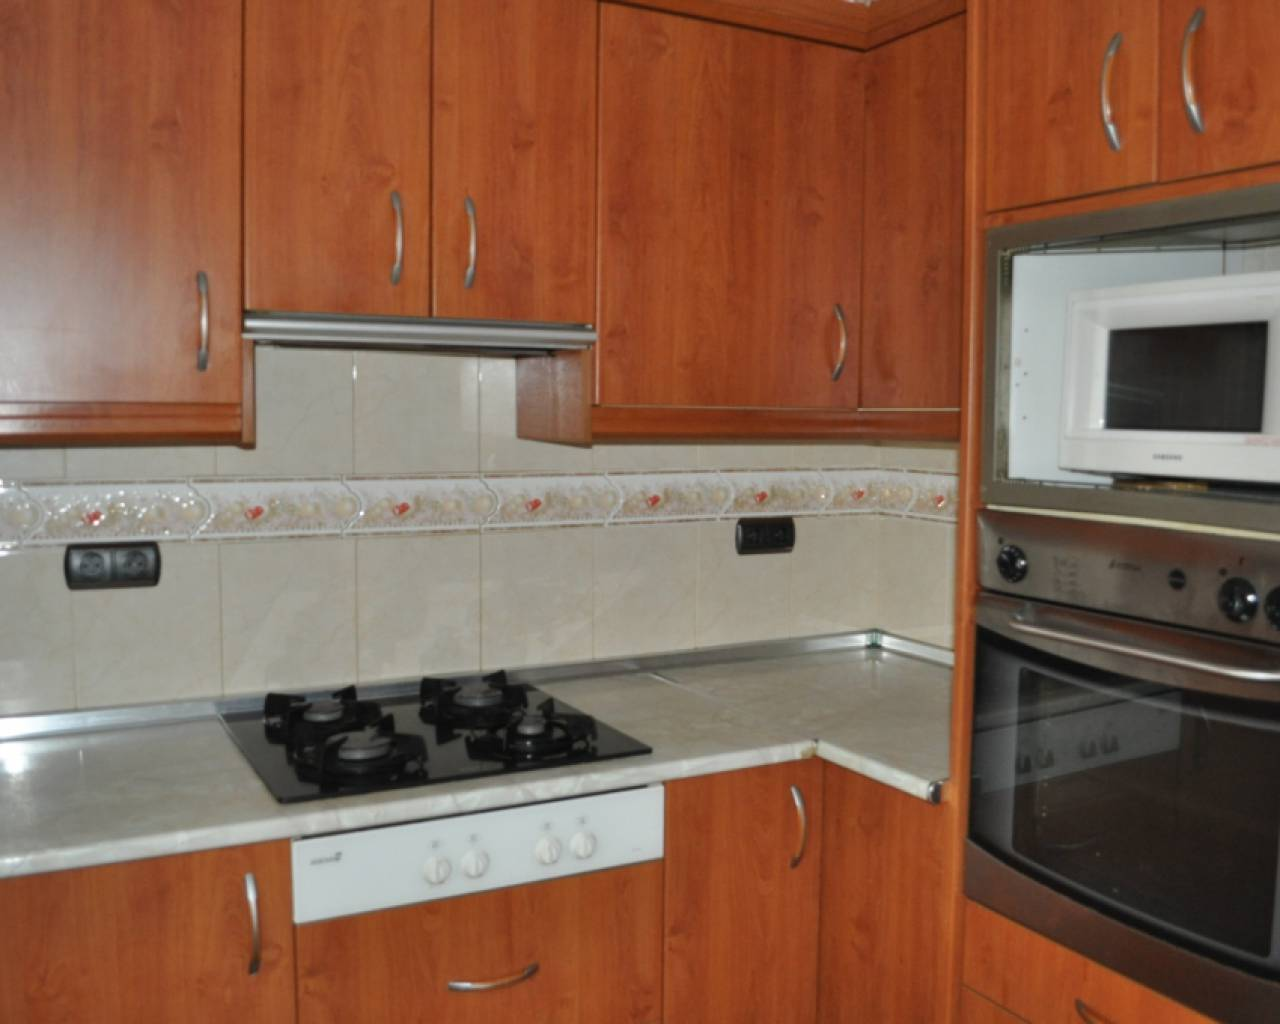 Sale - Apartment / Flat - Villajoyosa - Poble Nou